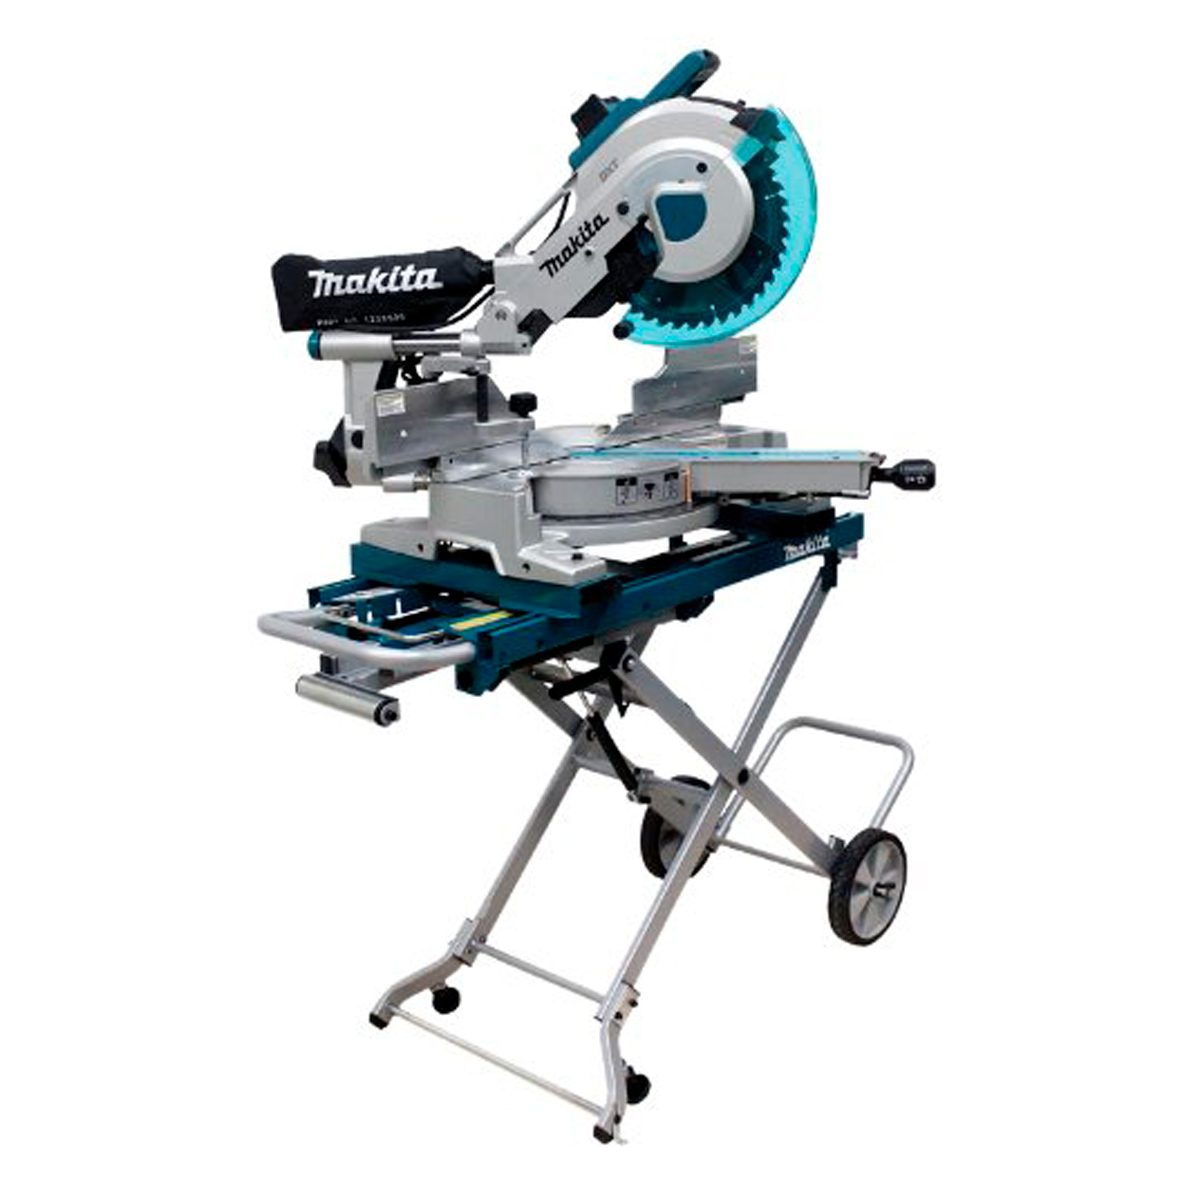 Makita-12-Inch-Compound-Miter-Saw-with-Stand